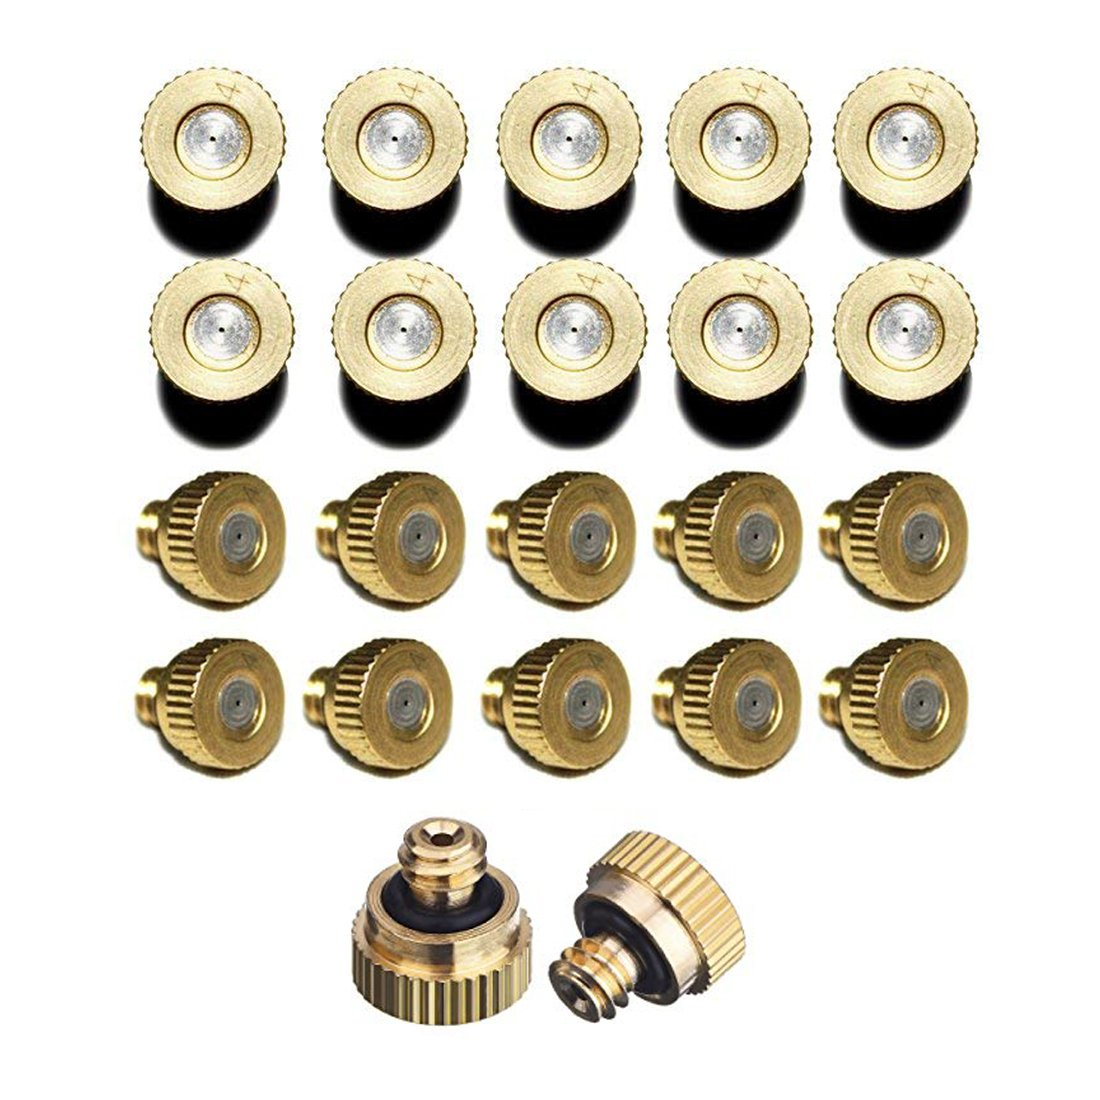 EONBON 22pcs/Pack 0.4mm Orifice 10/24 UNC Brass Misting Nozzles Low Pressure Mist Nozzle for Greenhouse Landscaping Dust Control and Outdoor Cooling Mister System